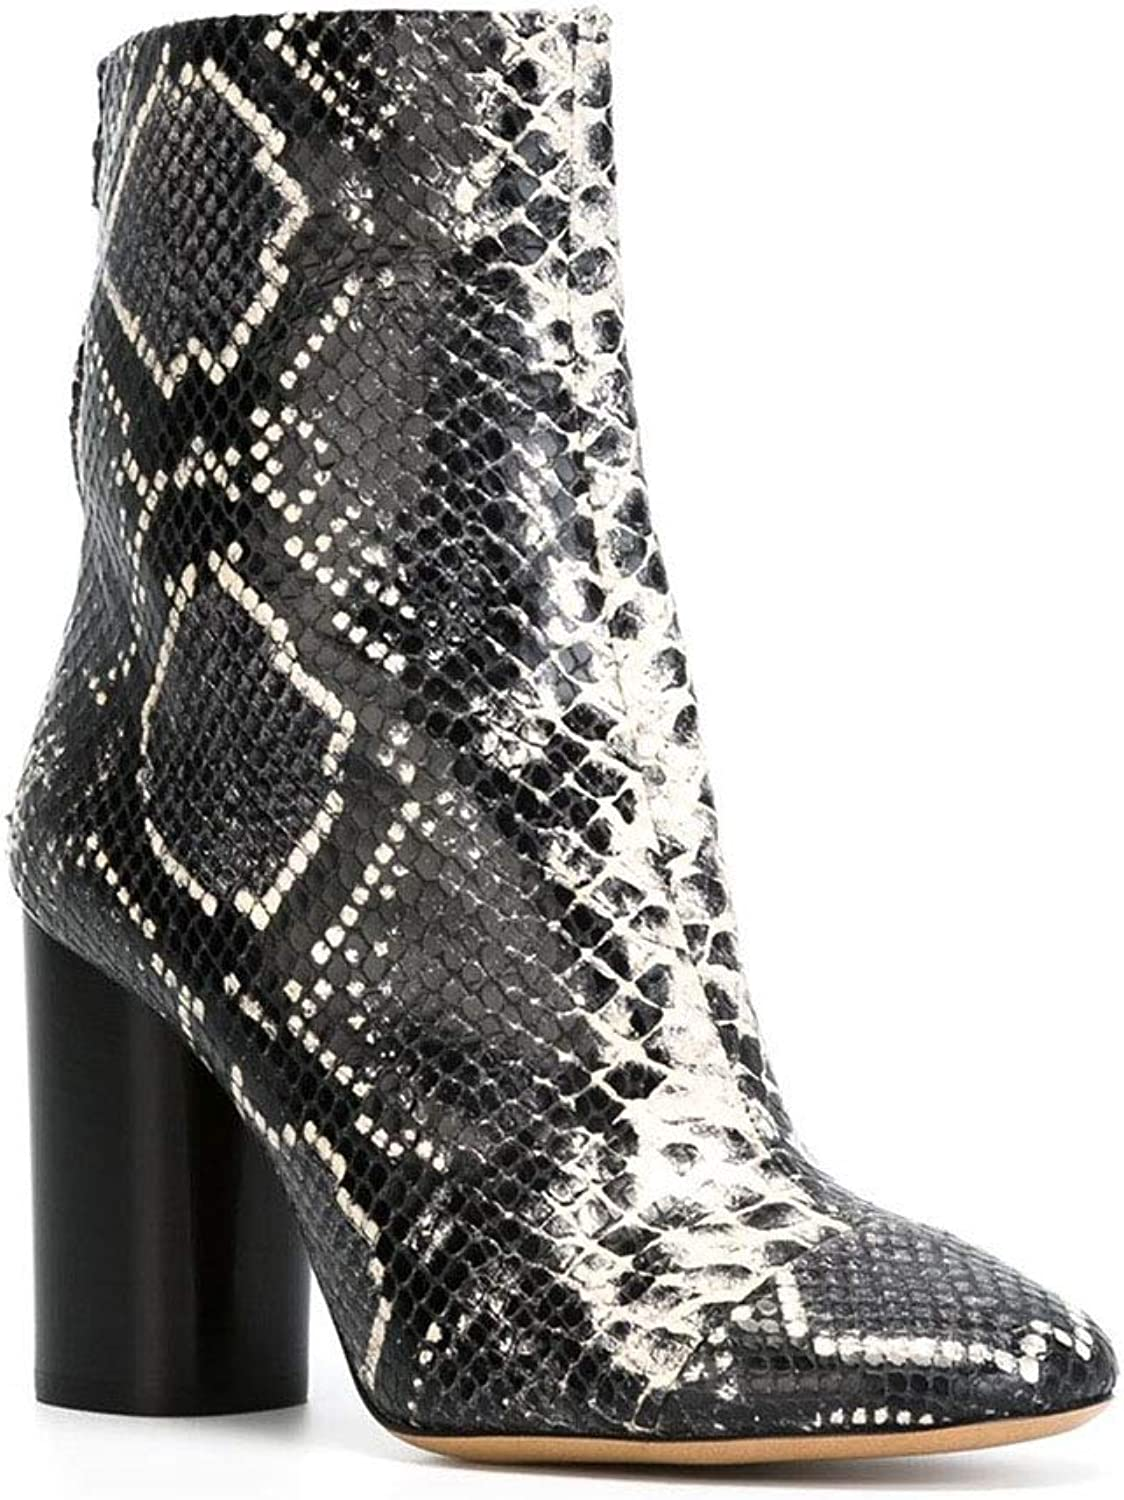 Women's high-Heeled Ankle Boots Women's Ankle Boots Comfortable Thick Heel Skin Pattern Pointed